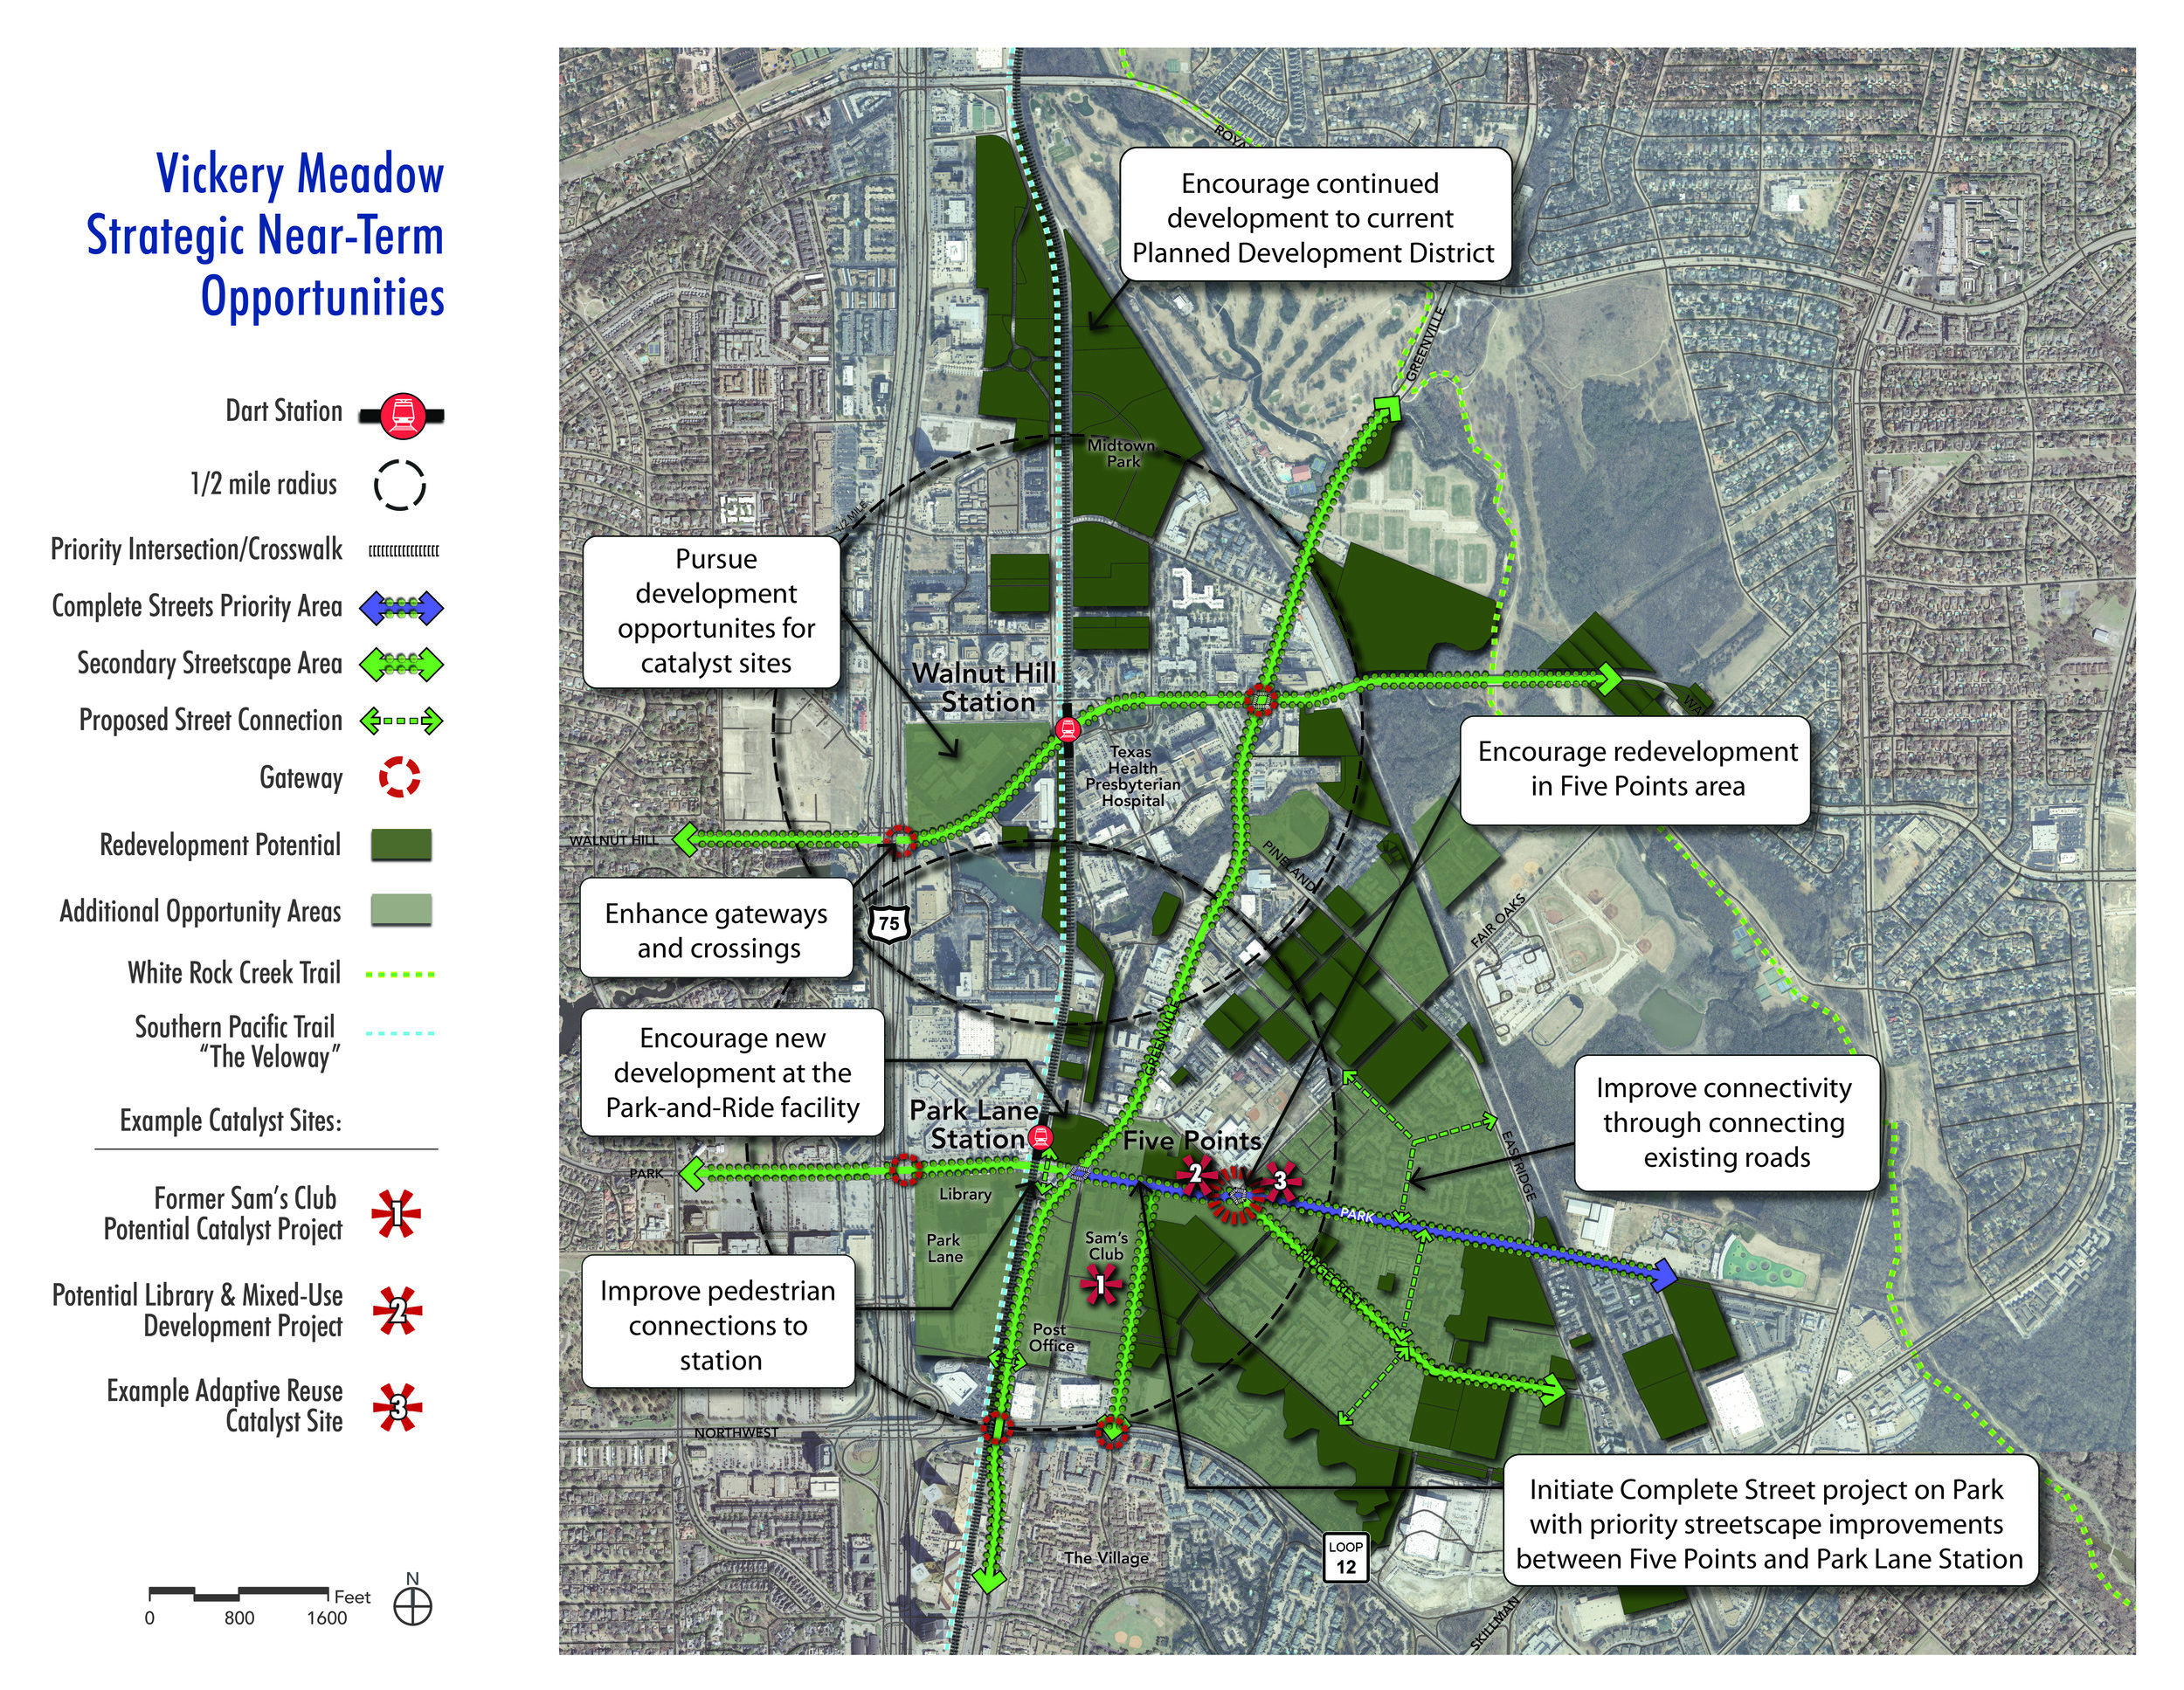 Vickery-Meadow-strategic-opportunities-01.jpg